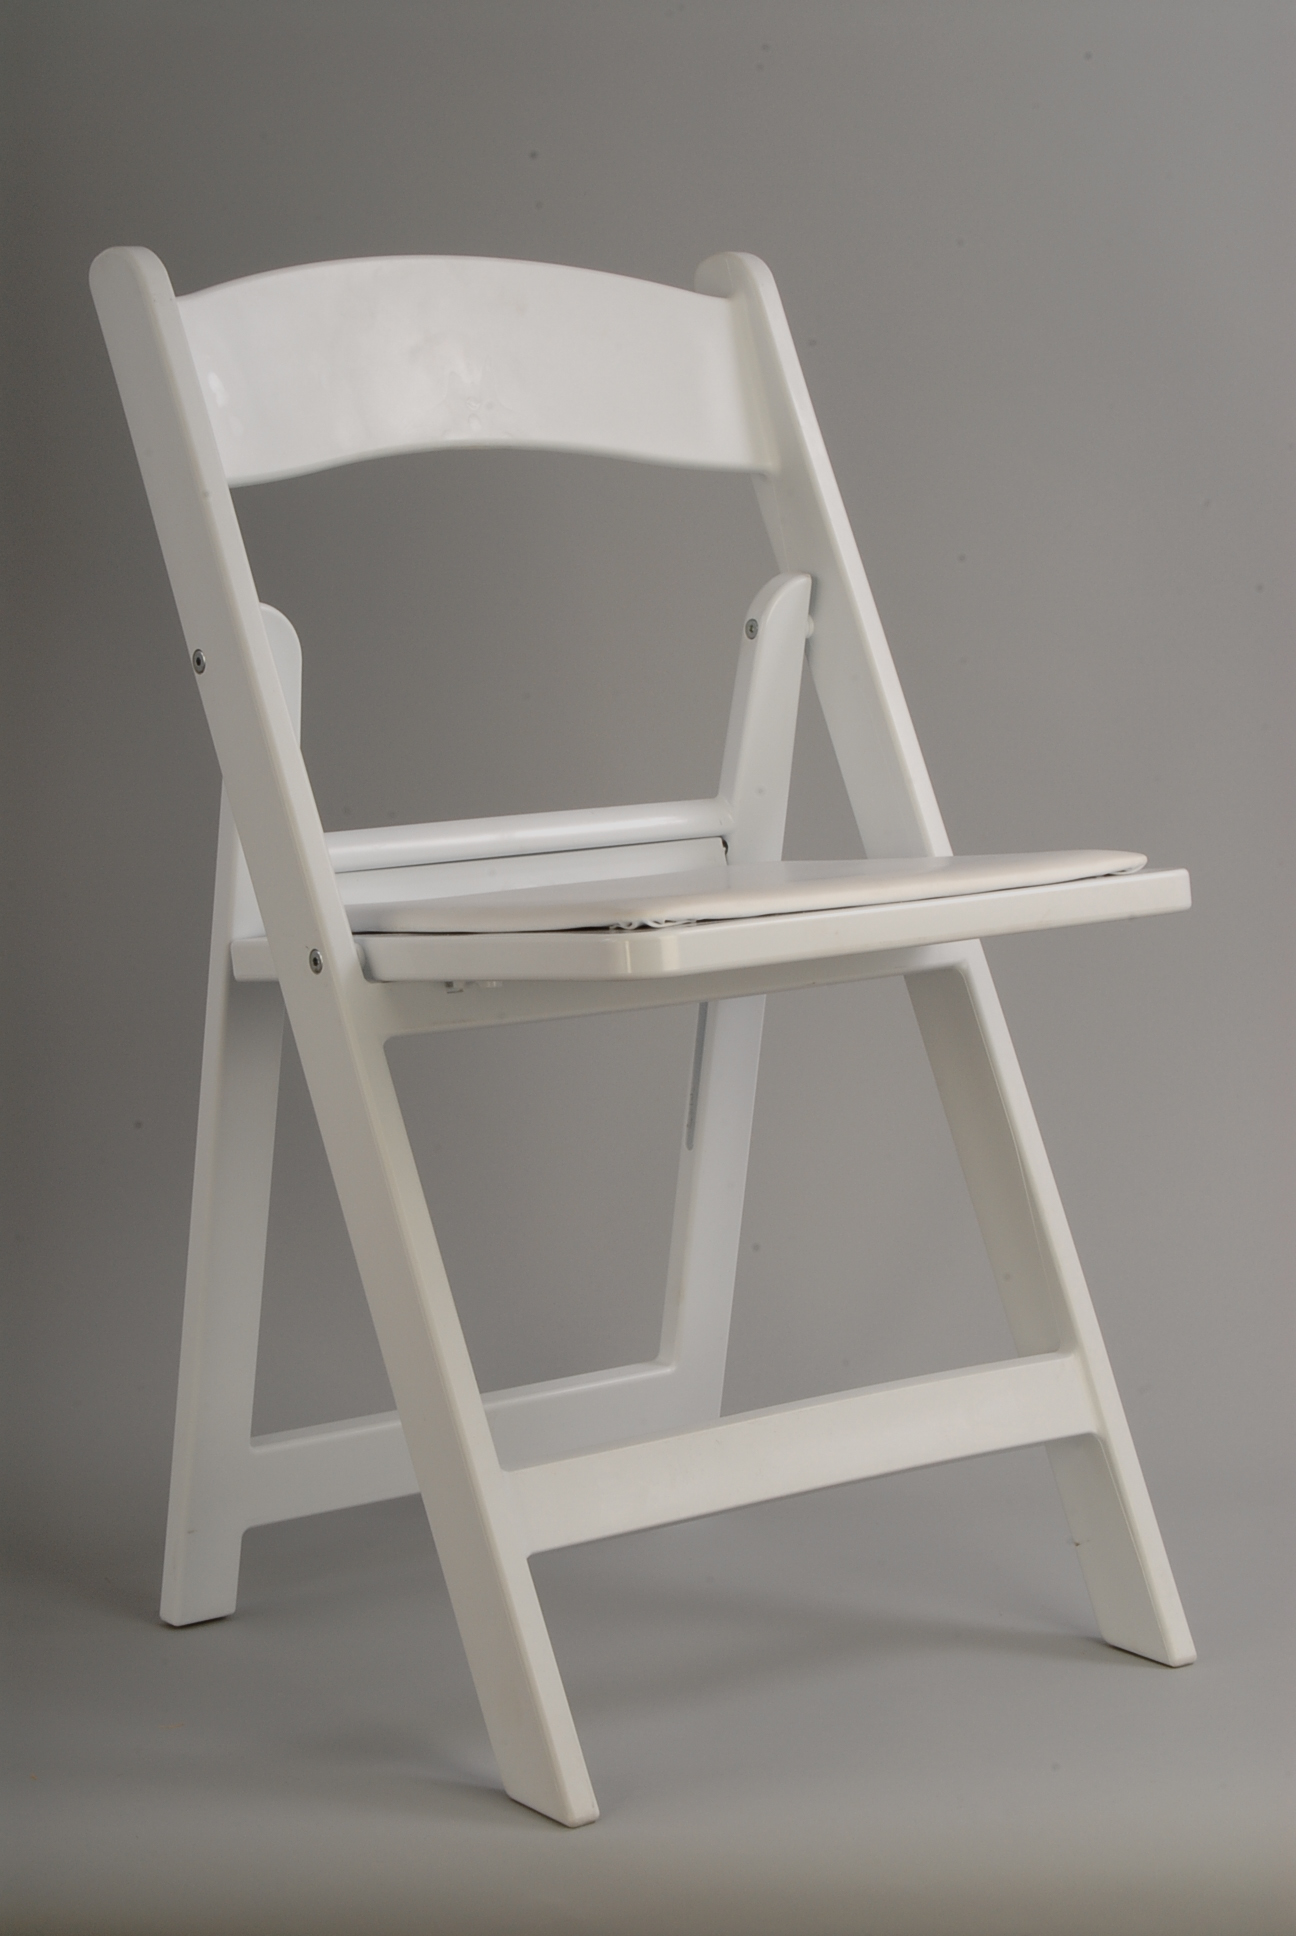 White Resin Folding Chair rentals online $4 day